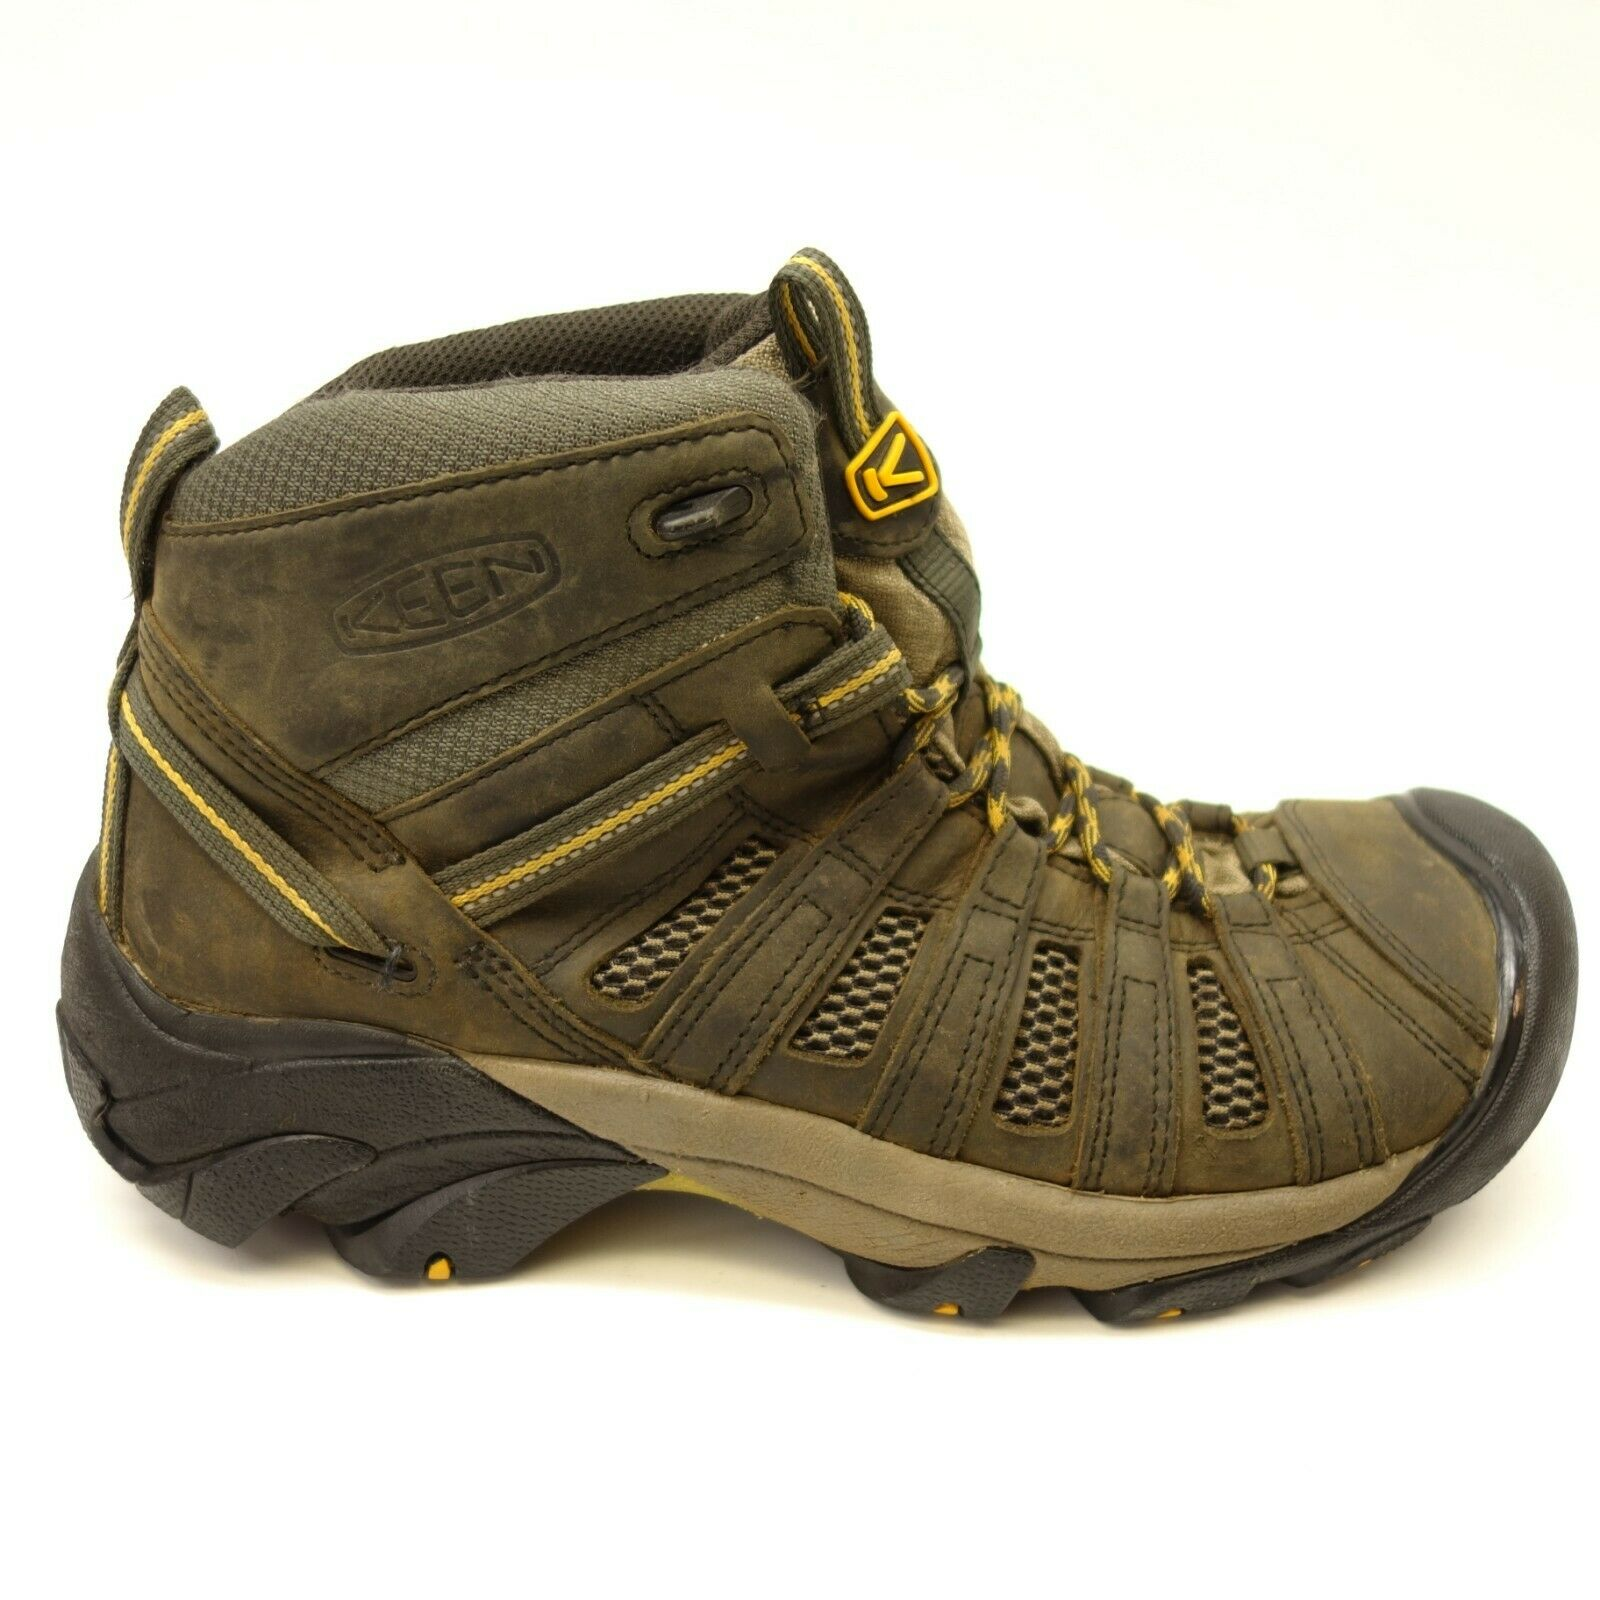 Keen Mens Voyageur Olive Mid Leather Athletic Support Hiking Trail shoes Sz 10.5